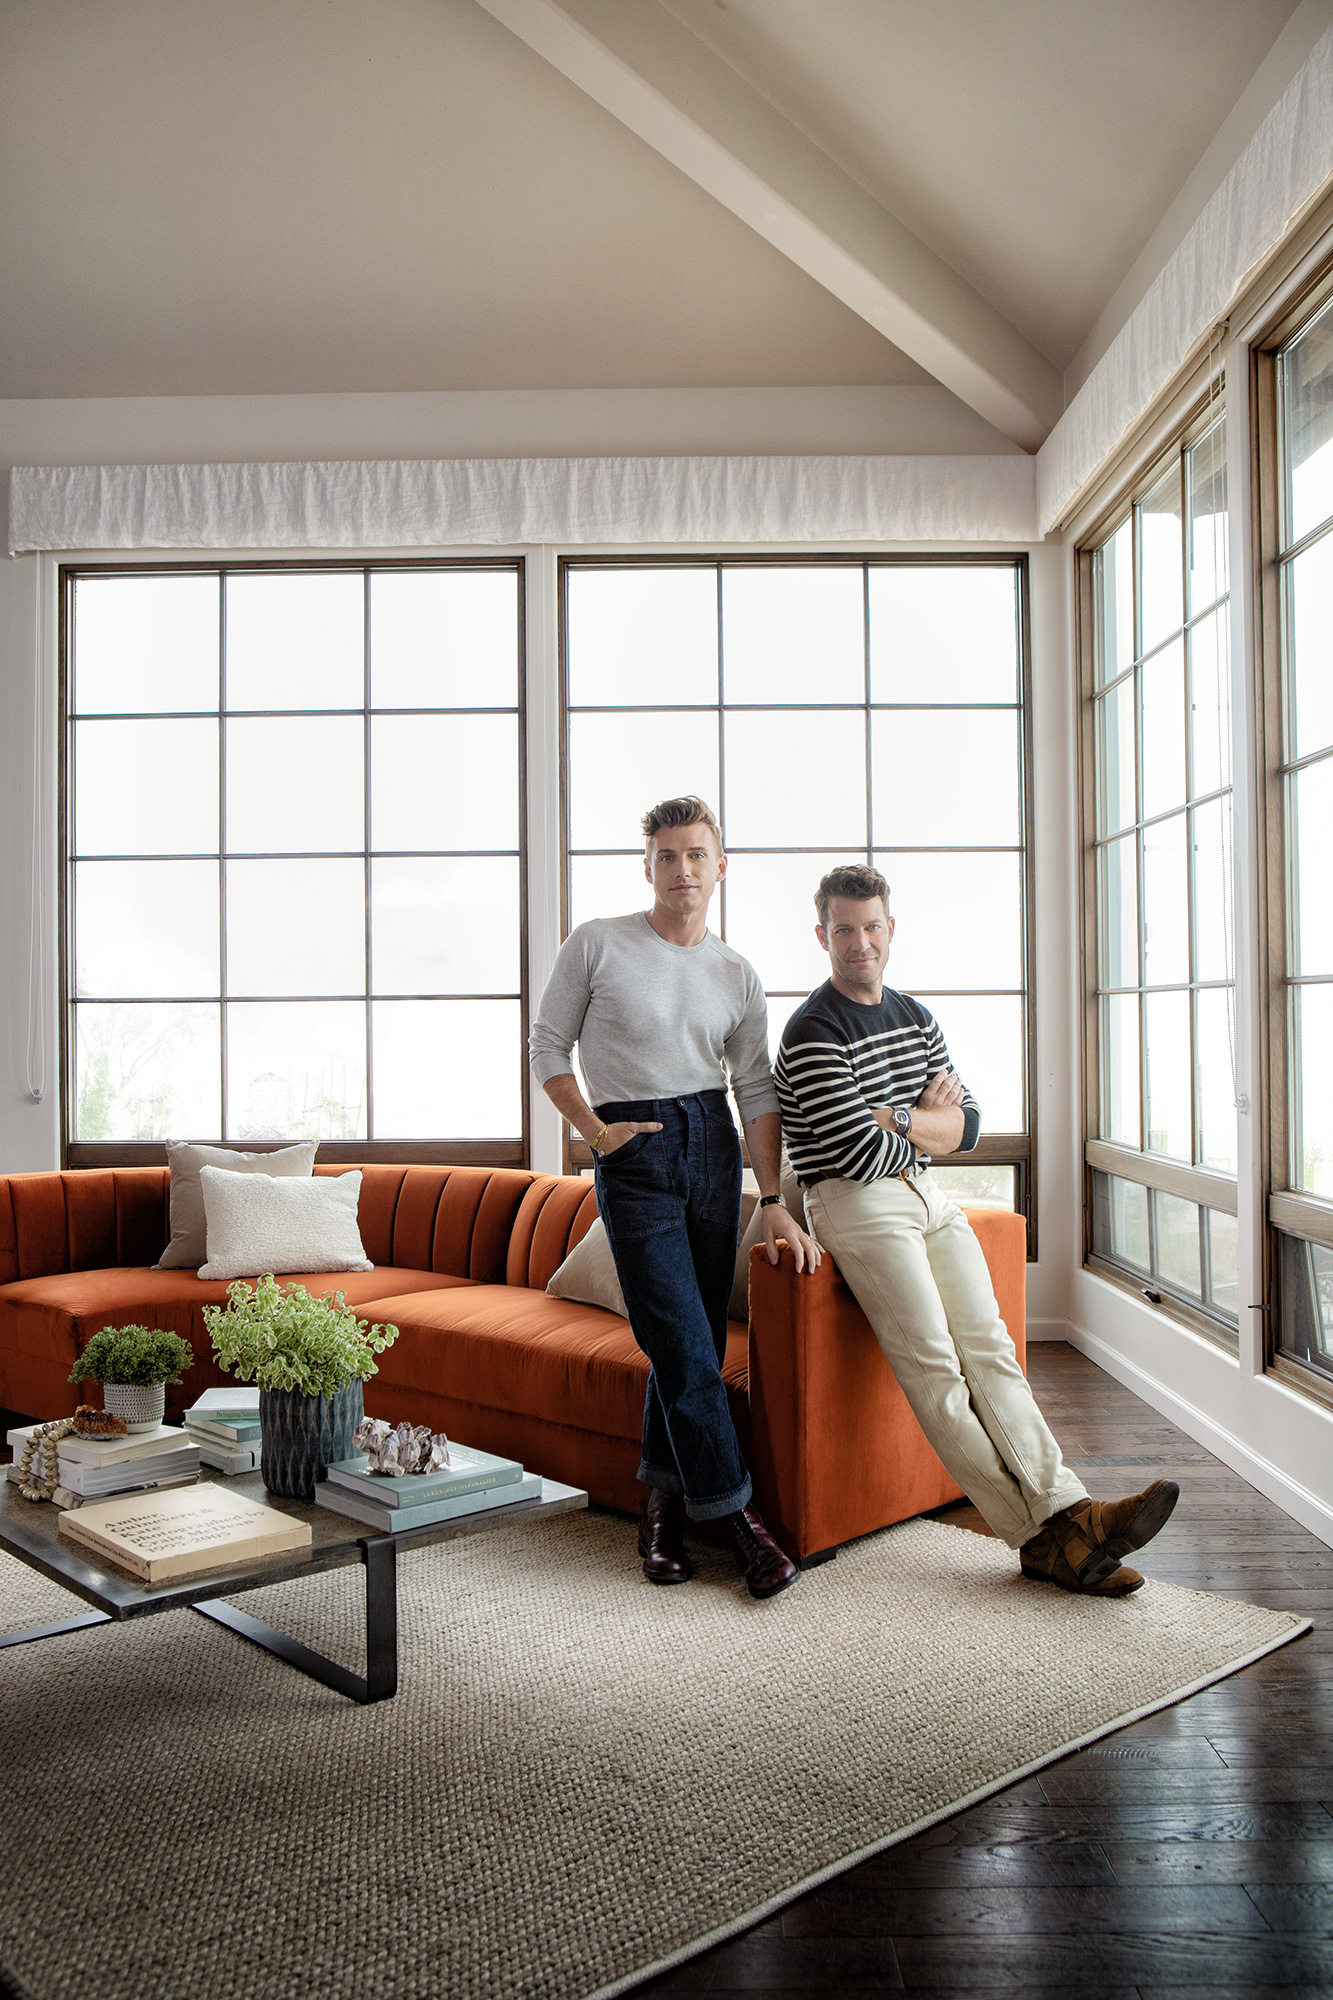 spectacular bali end table foremost nate berkus jeremiah brent living spaces accent target and debut furniture line inspired their own home storage bags dale tiffany torchiere